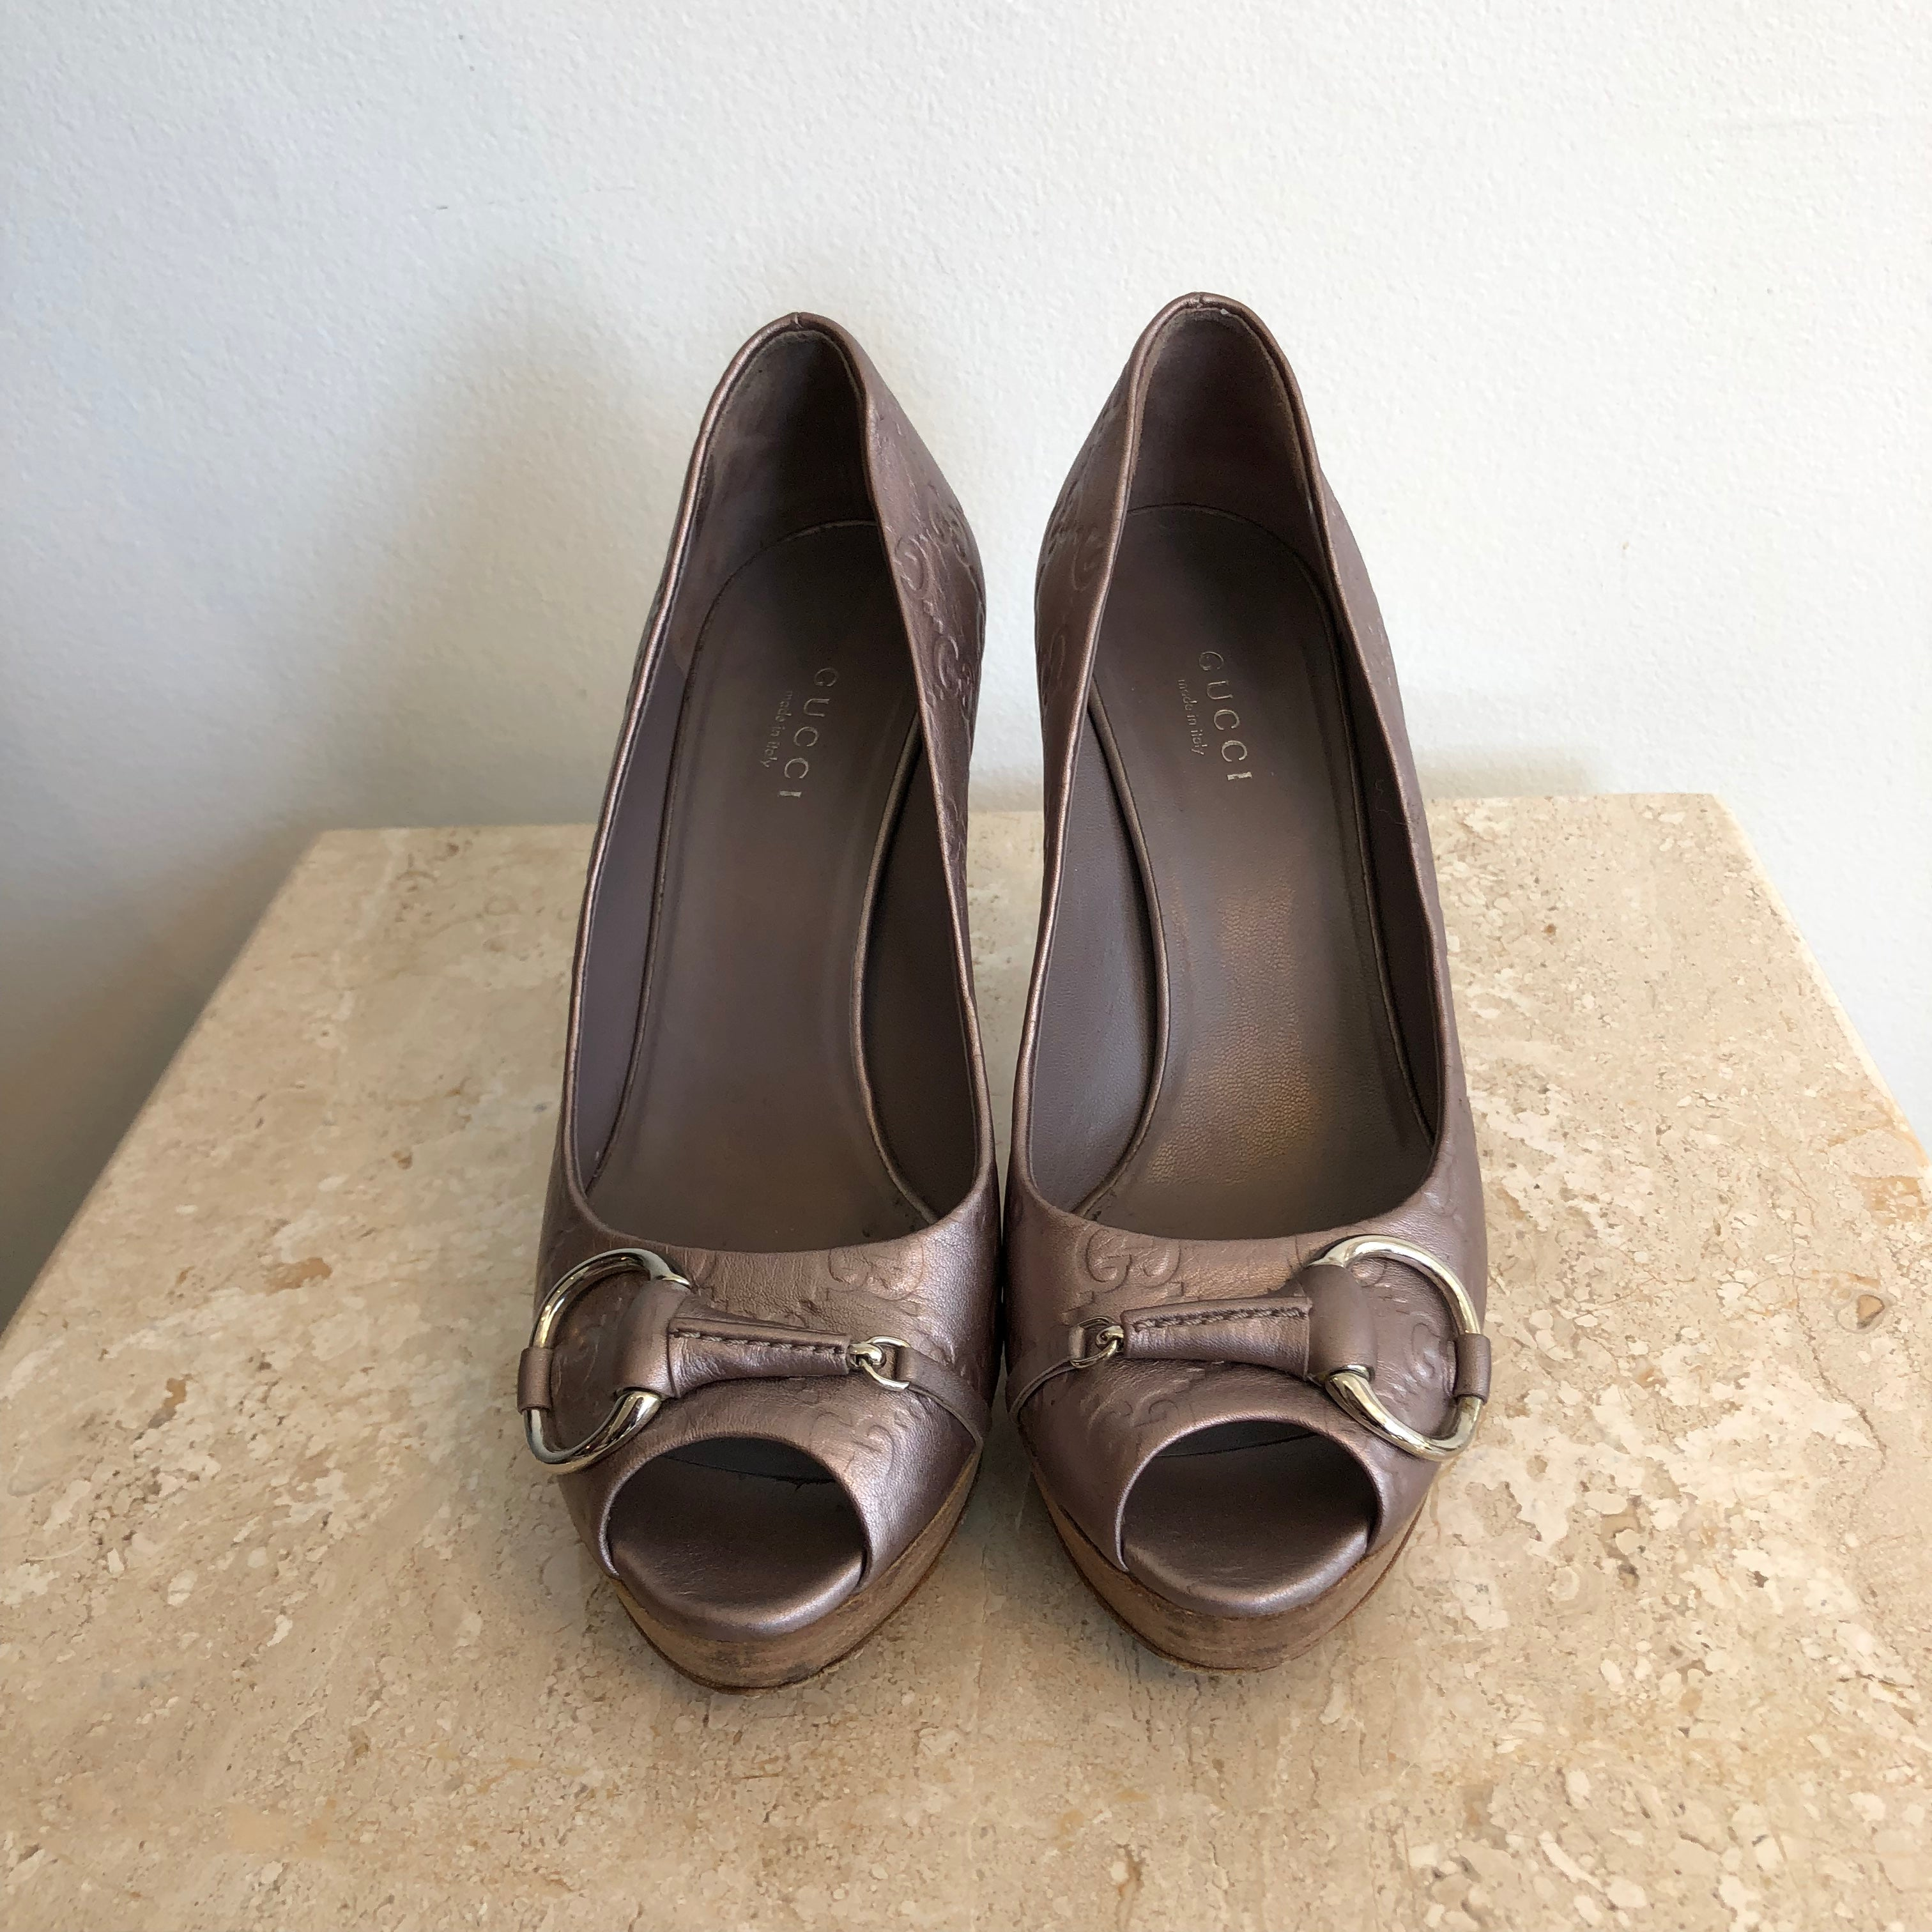 Authentic GUCCI Guccissima Horsebit Lilac Metallic Shoes Size 6.5